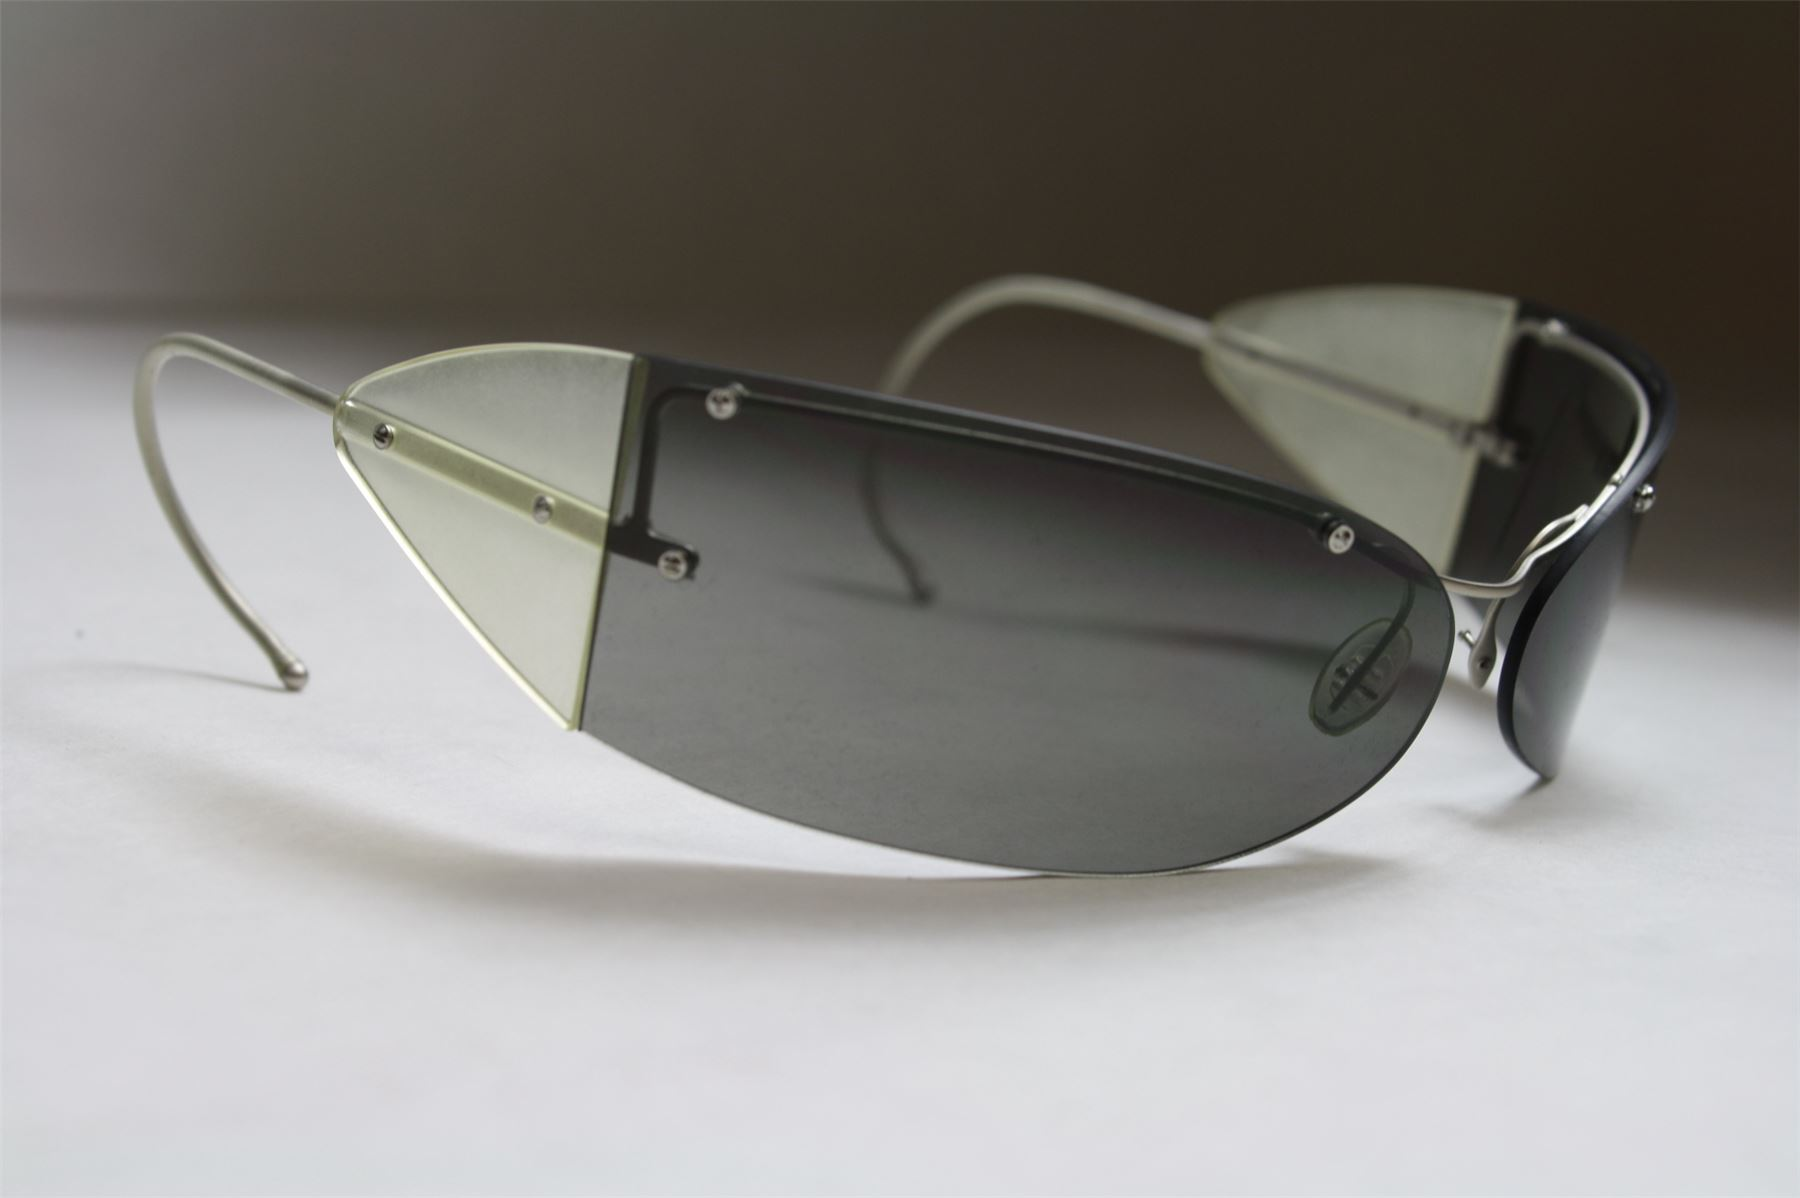 8cd3863d1c PRADA SPR65B Sunglasses Wrap Around Ear With Case Made in Italy